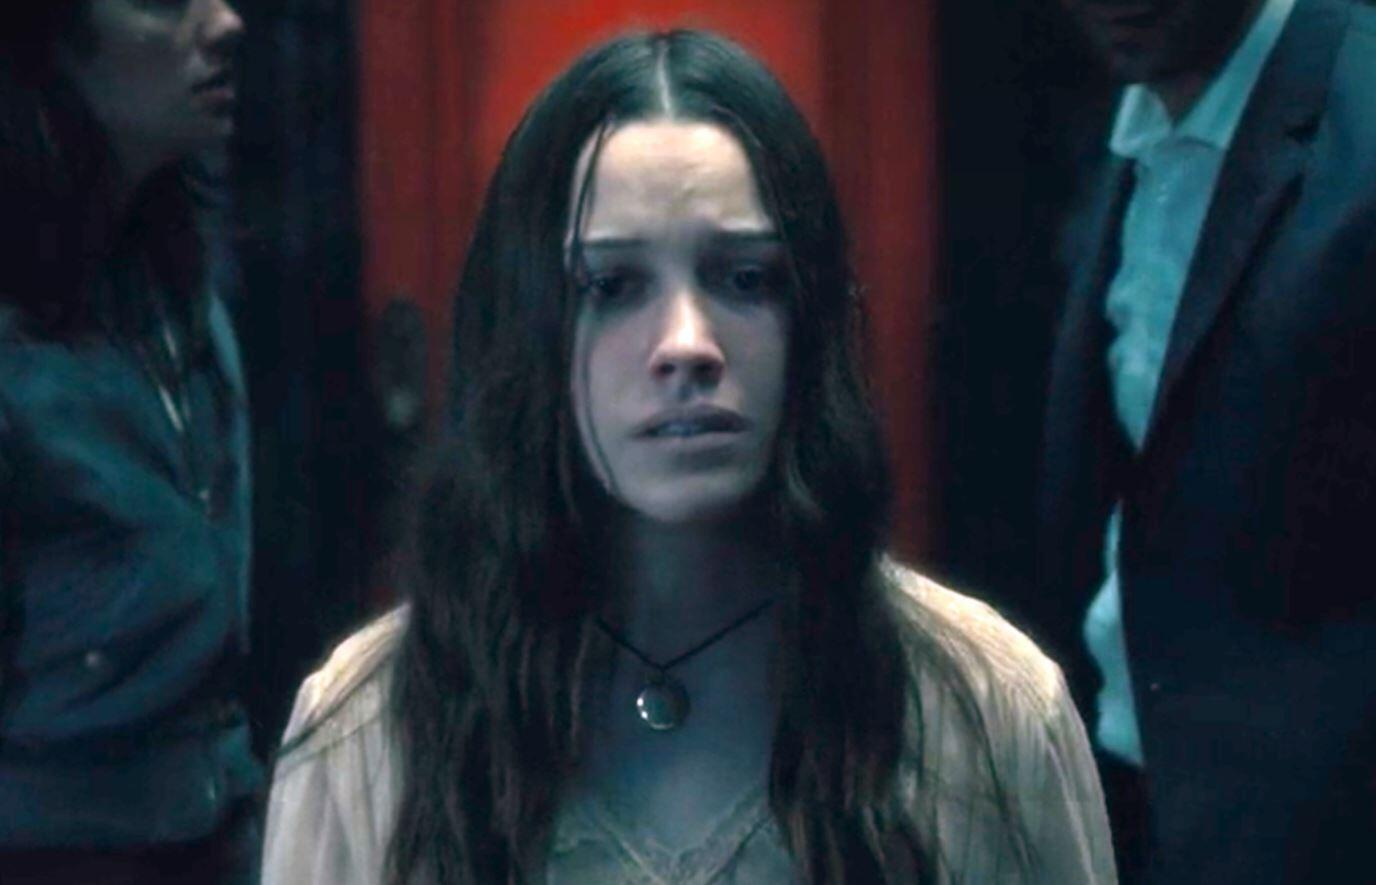 The Haunting Of Hill House Star Victoria Pedretti Returning For The Haunting Of Bly Manor